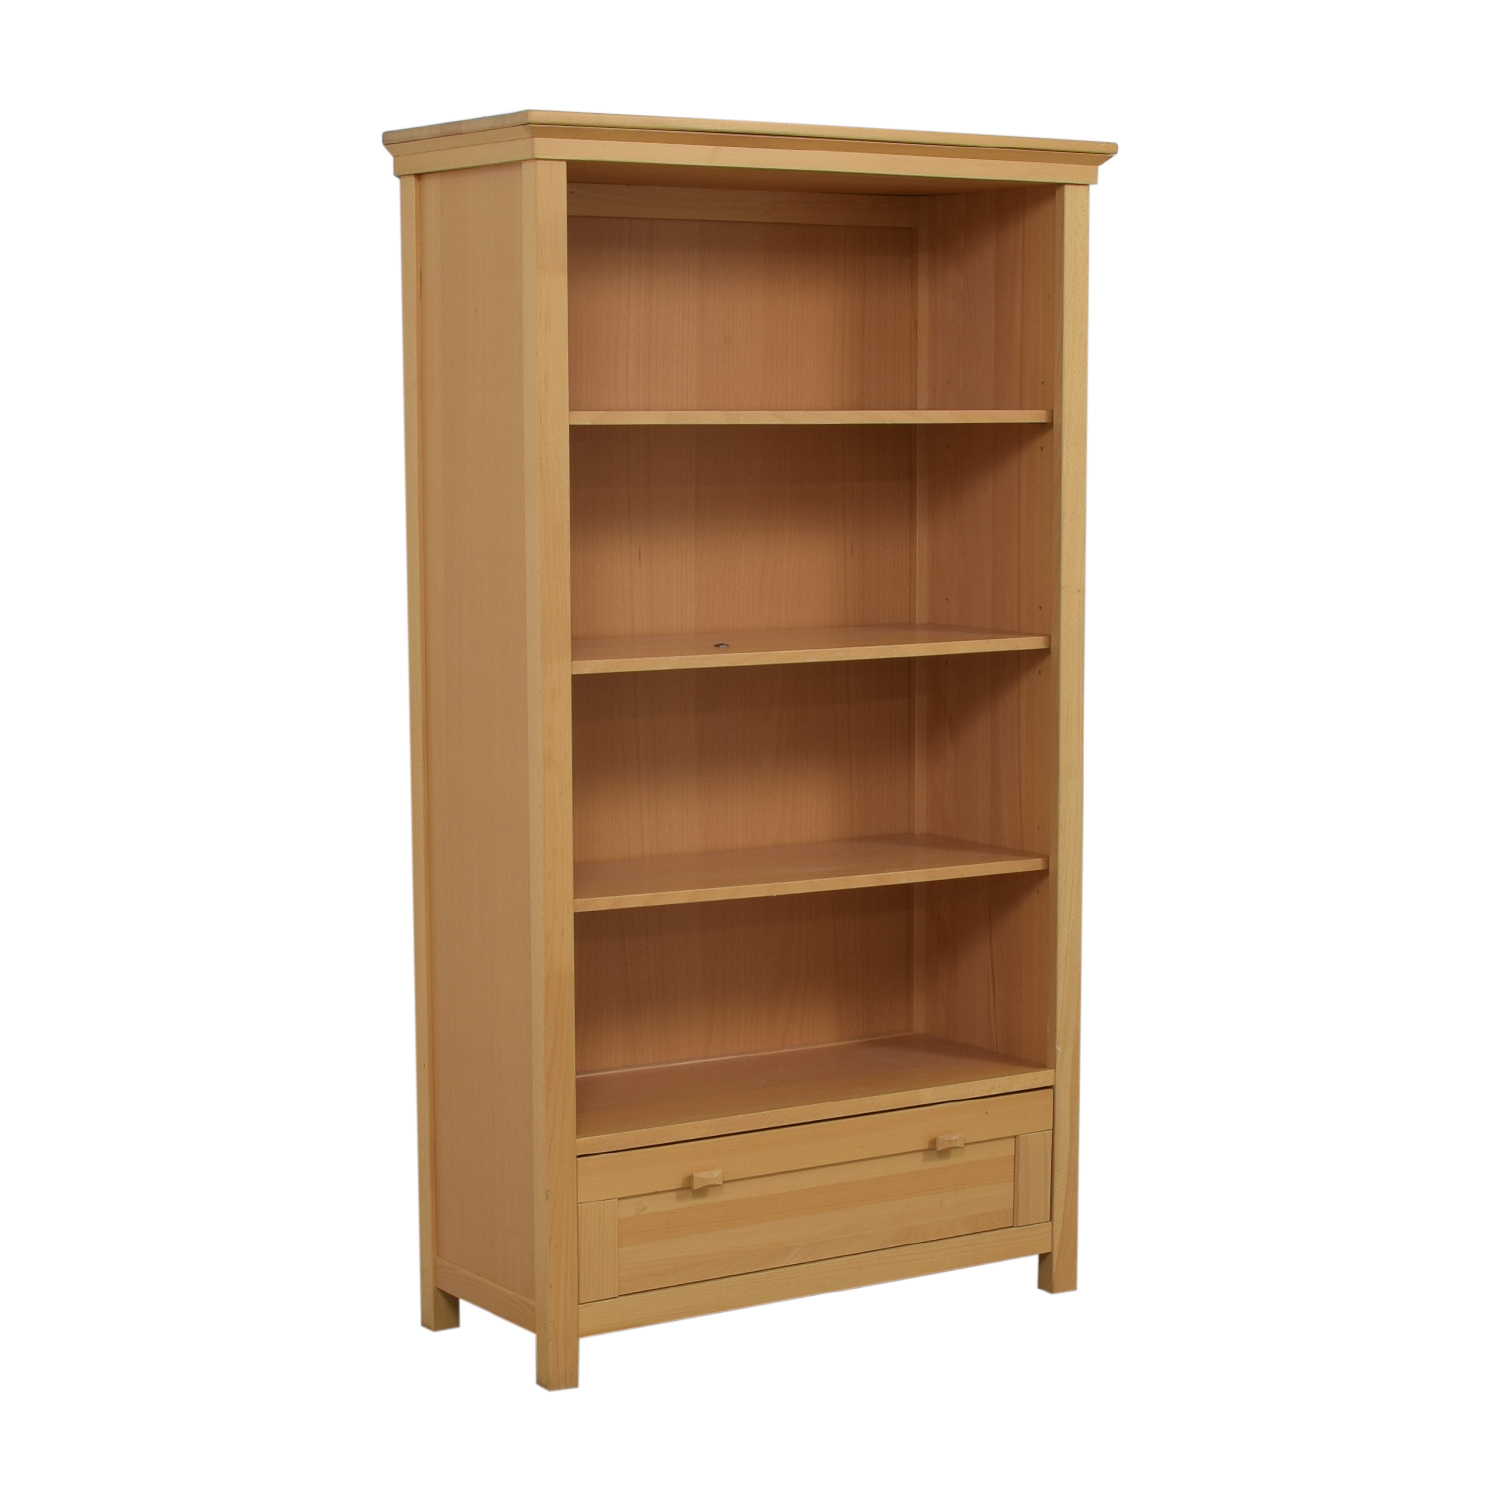 Romina Romina Single Drawer Wood Bookcase dimensions